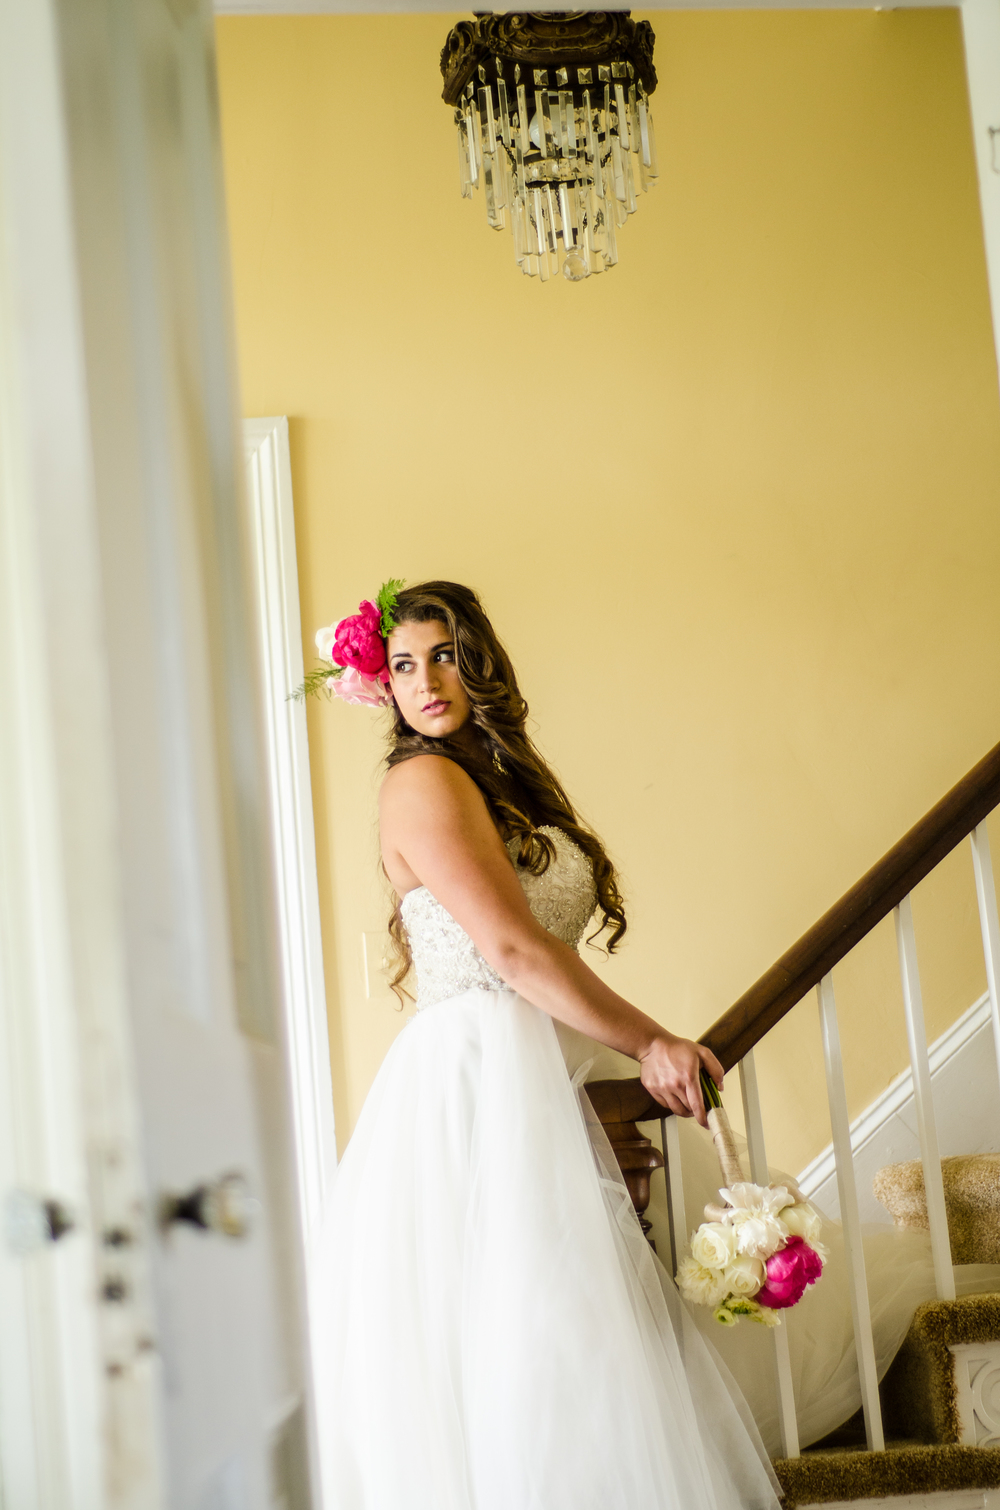 fairbanks wedding photographer - bride on stairwell